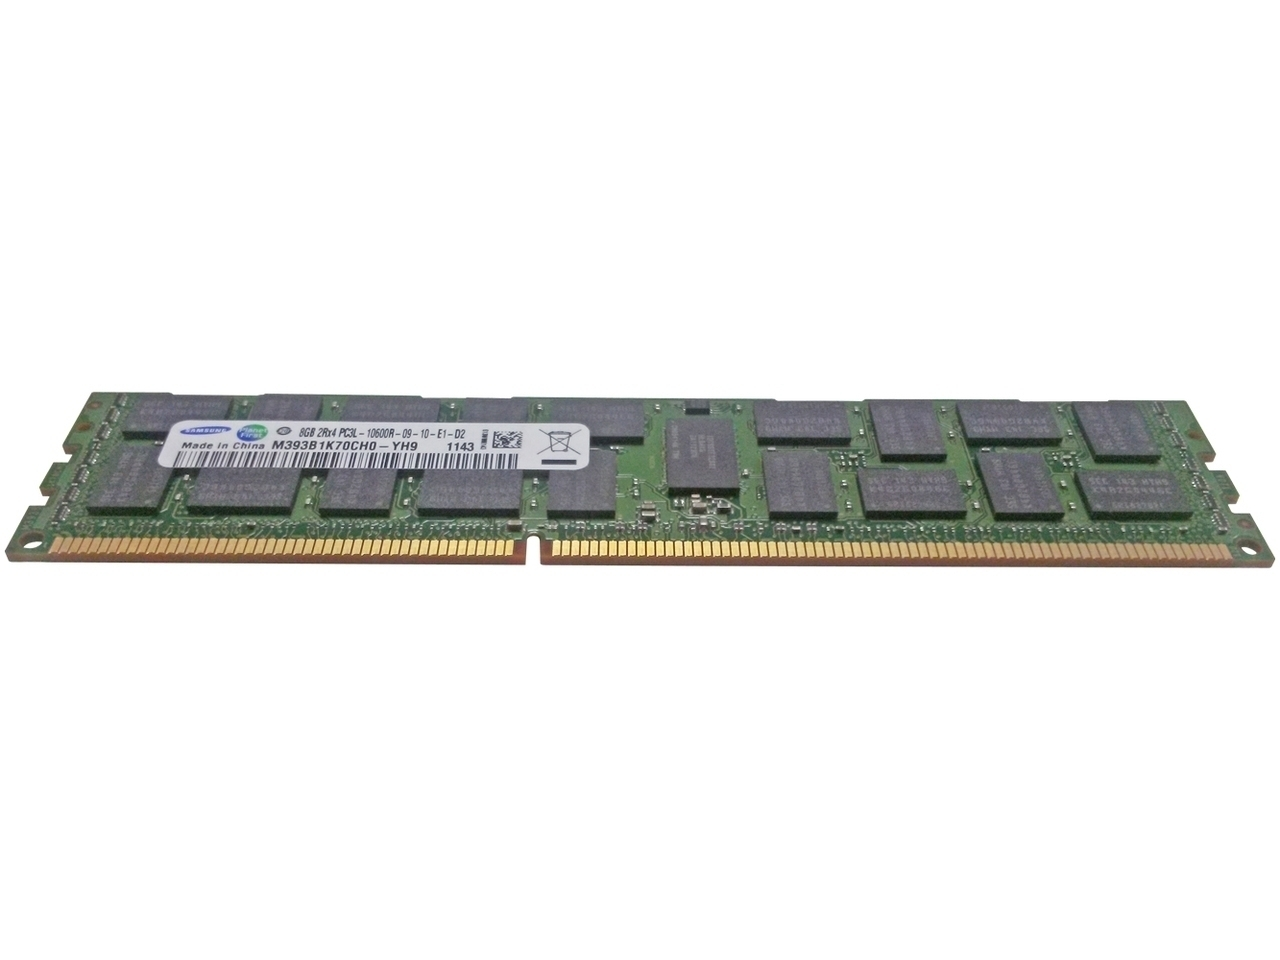 8GB (1x 8GB, 2Rx4, 1.35 V) PC3L-10600 CL9 ECC 1333 MHz LP RDIMM